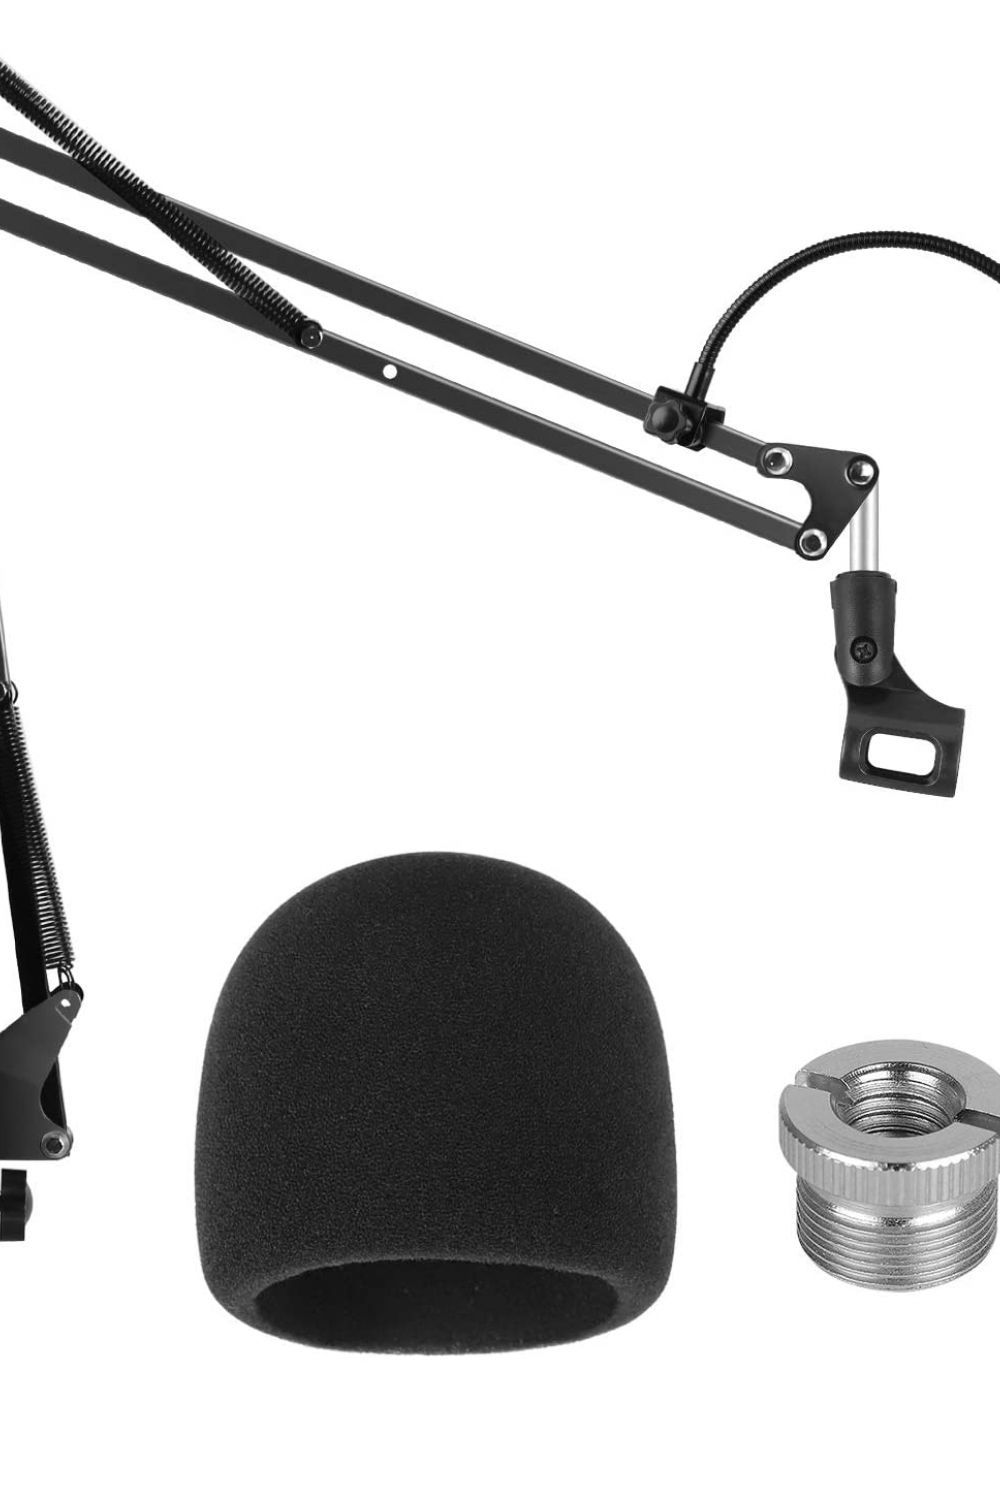 Microphone Stand PC Mic Microphone Stand Heavy Duty Microphone ...